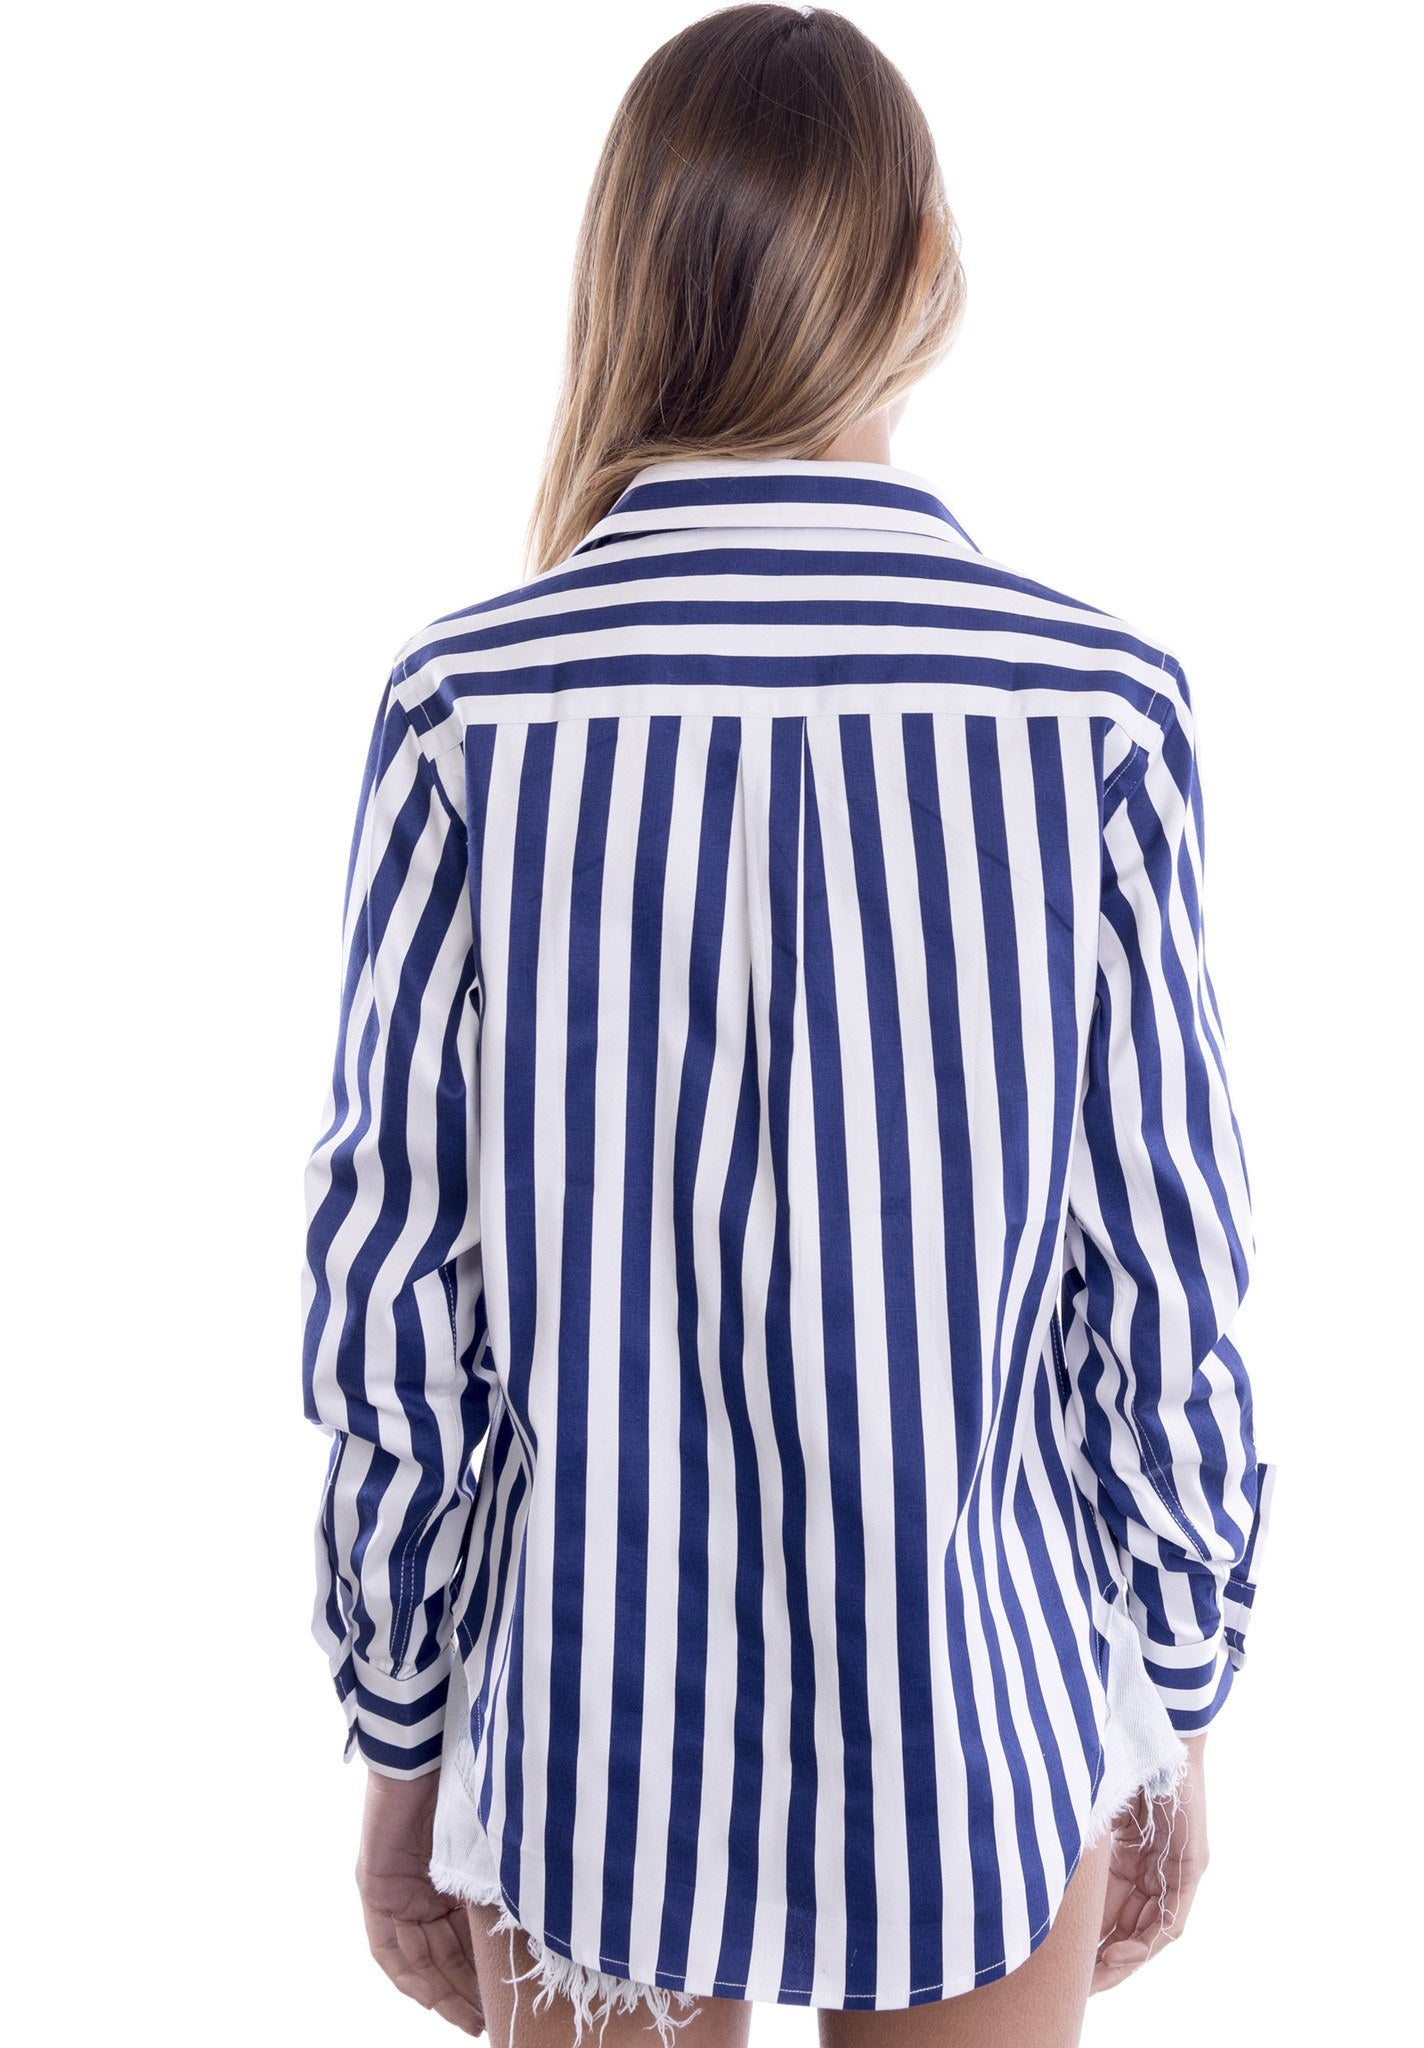 Orvis Woman's Light Blue Stripe Shirt, SZ 6. Orvis · Size (Women's) $ or Best Offer +$ shipping. Ladies Shirt New Blue And White Striped Split Sleeve The United States Clothes. Brand New · Unbranded. $ Buy It Now. Free Shipping. SPONSORED.